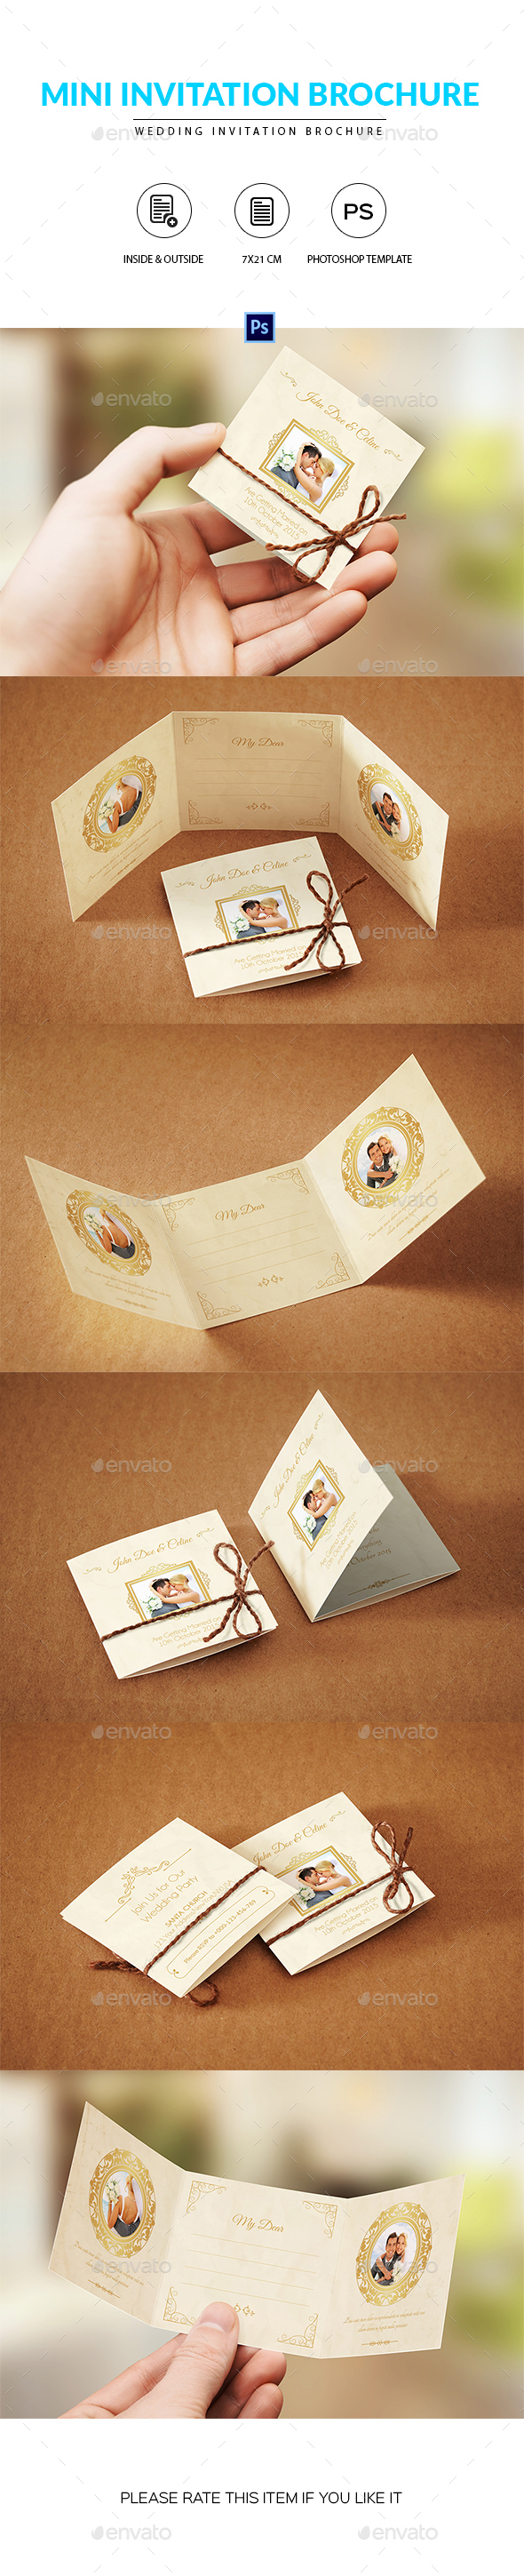 Wedding Mini Trifold Invitation Brochure